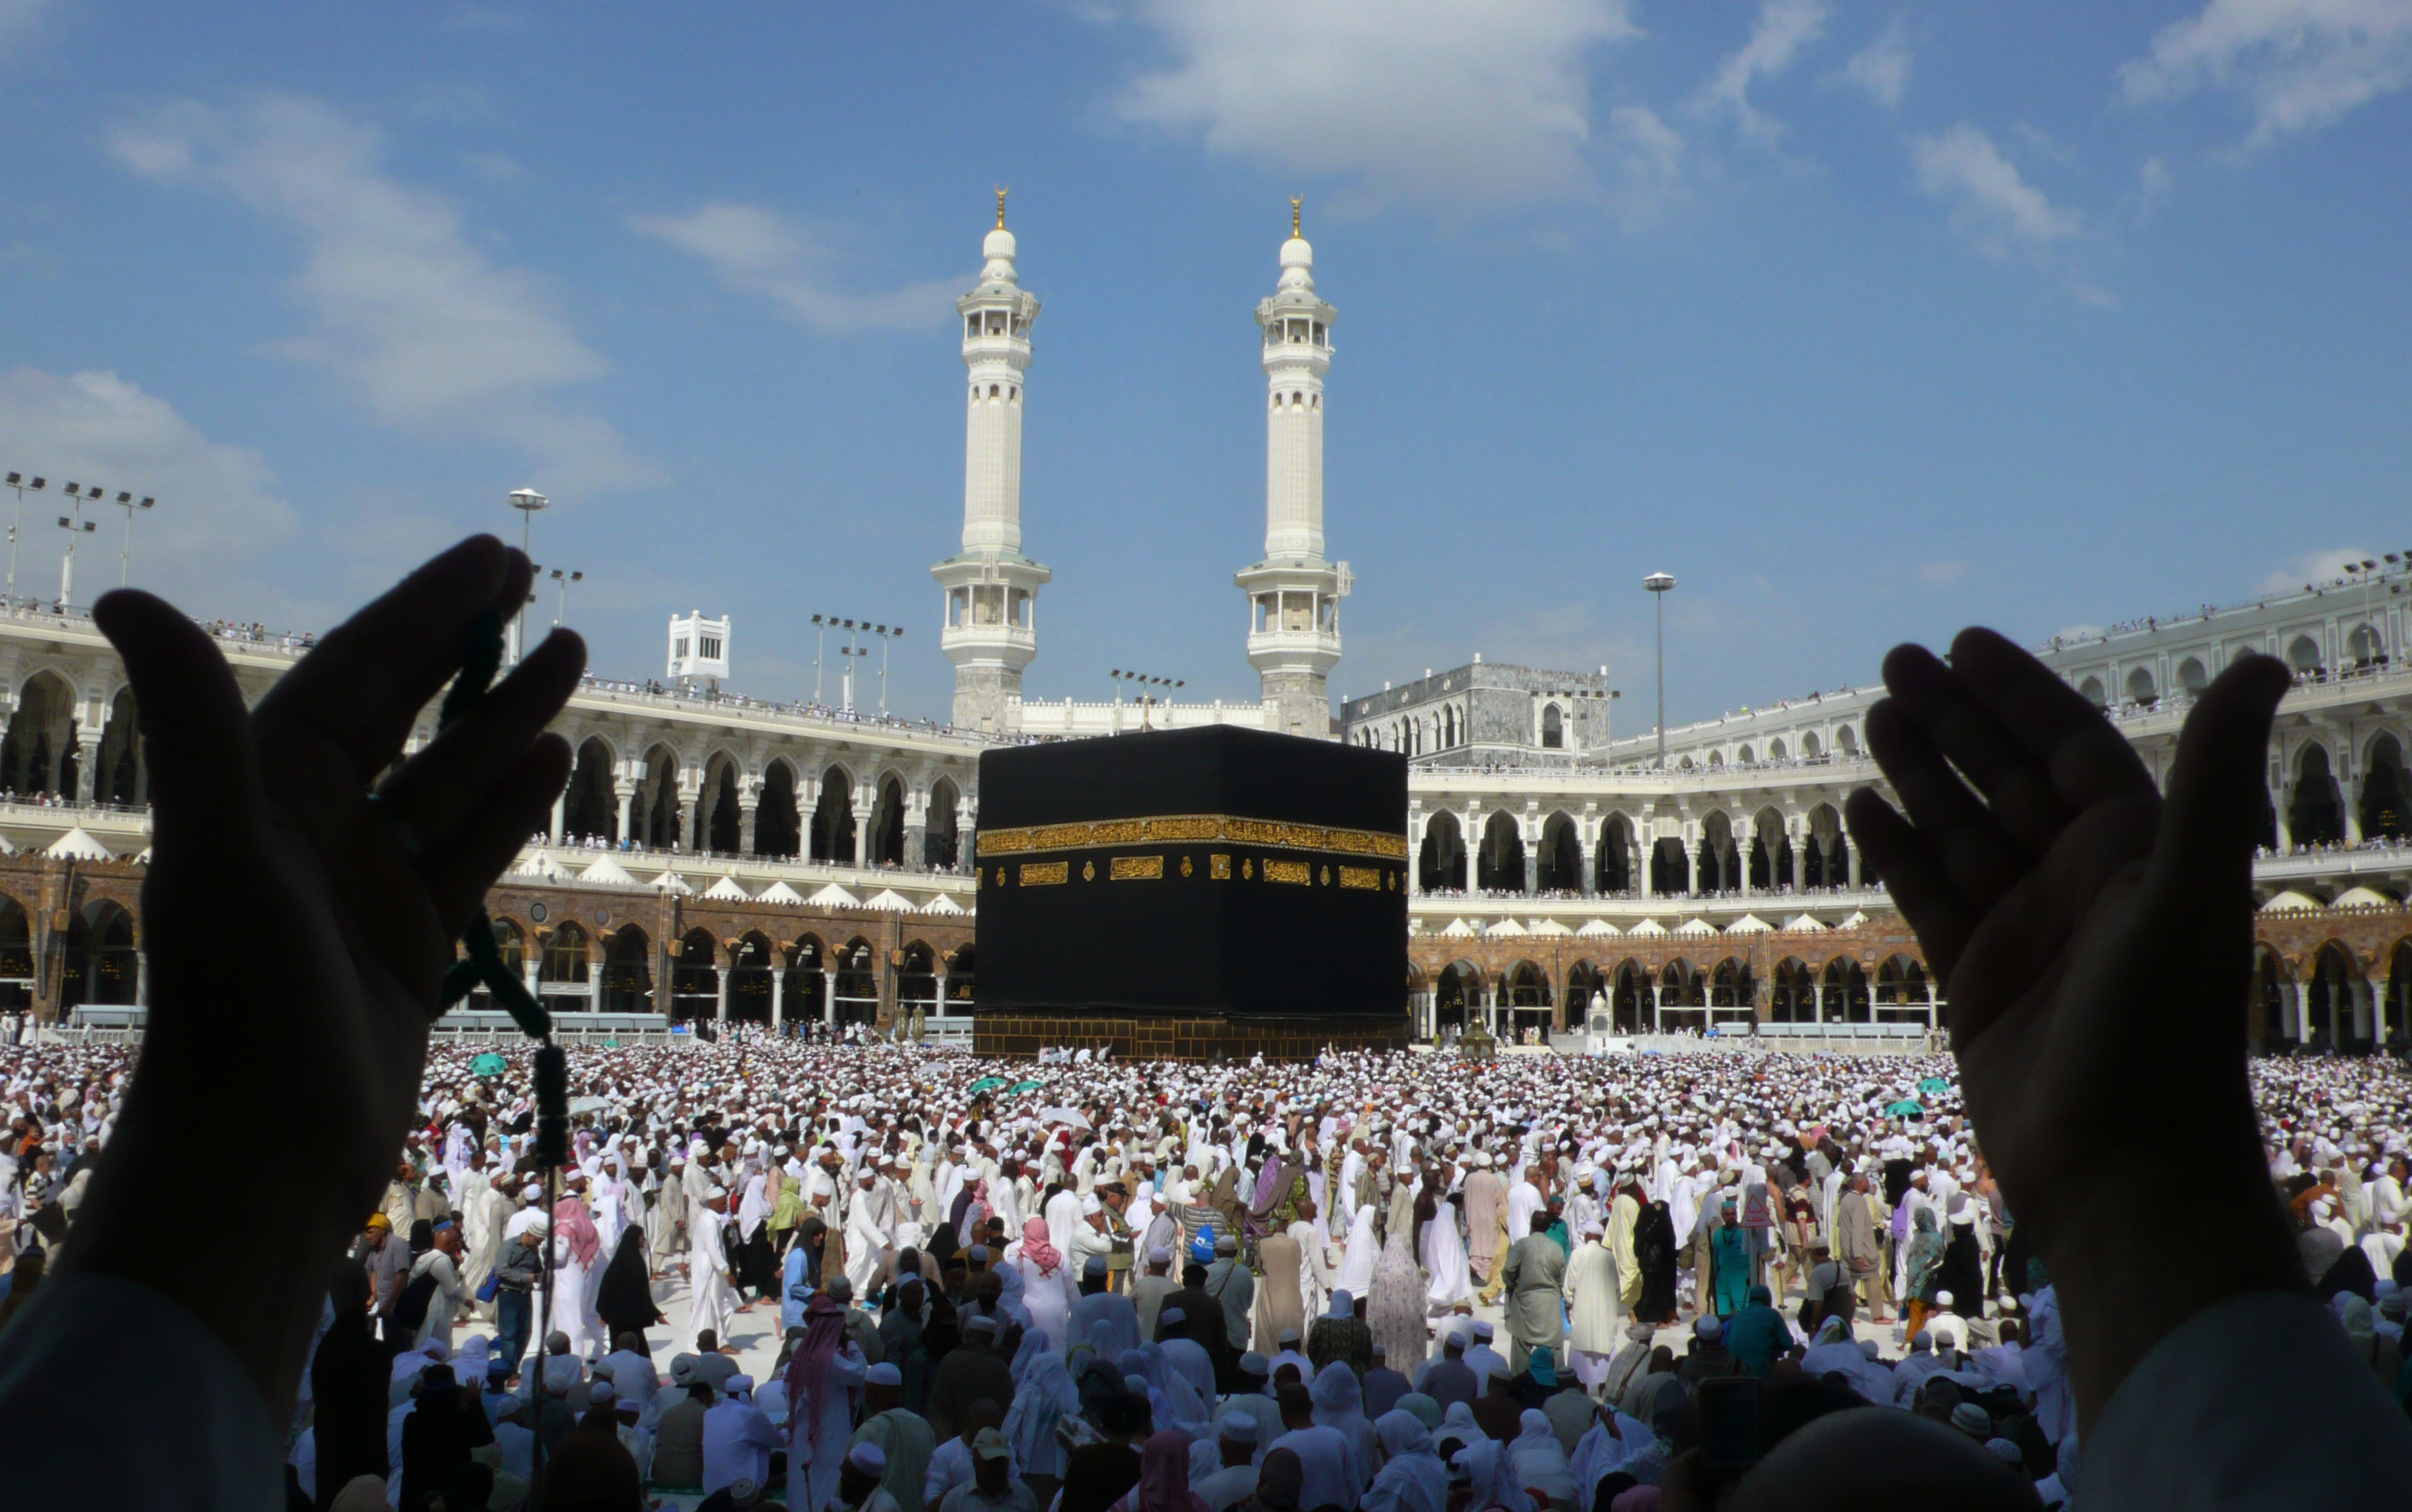 Hajj, the Islamic pilgrimage to Mecca, explained for non-Muslims